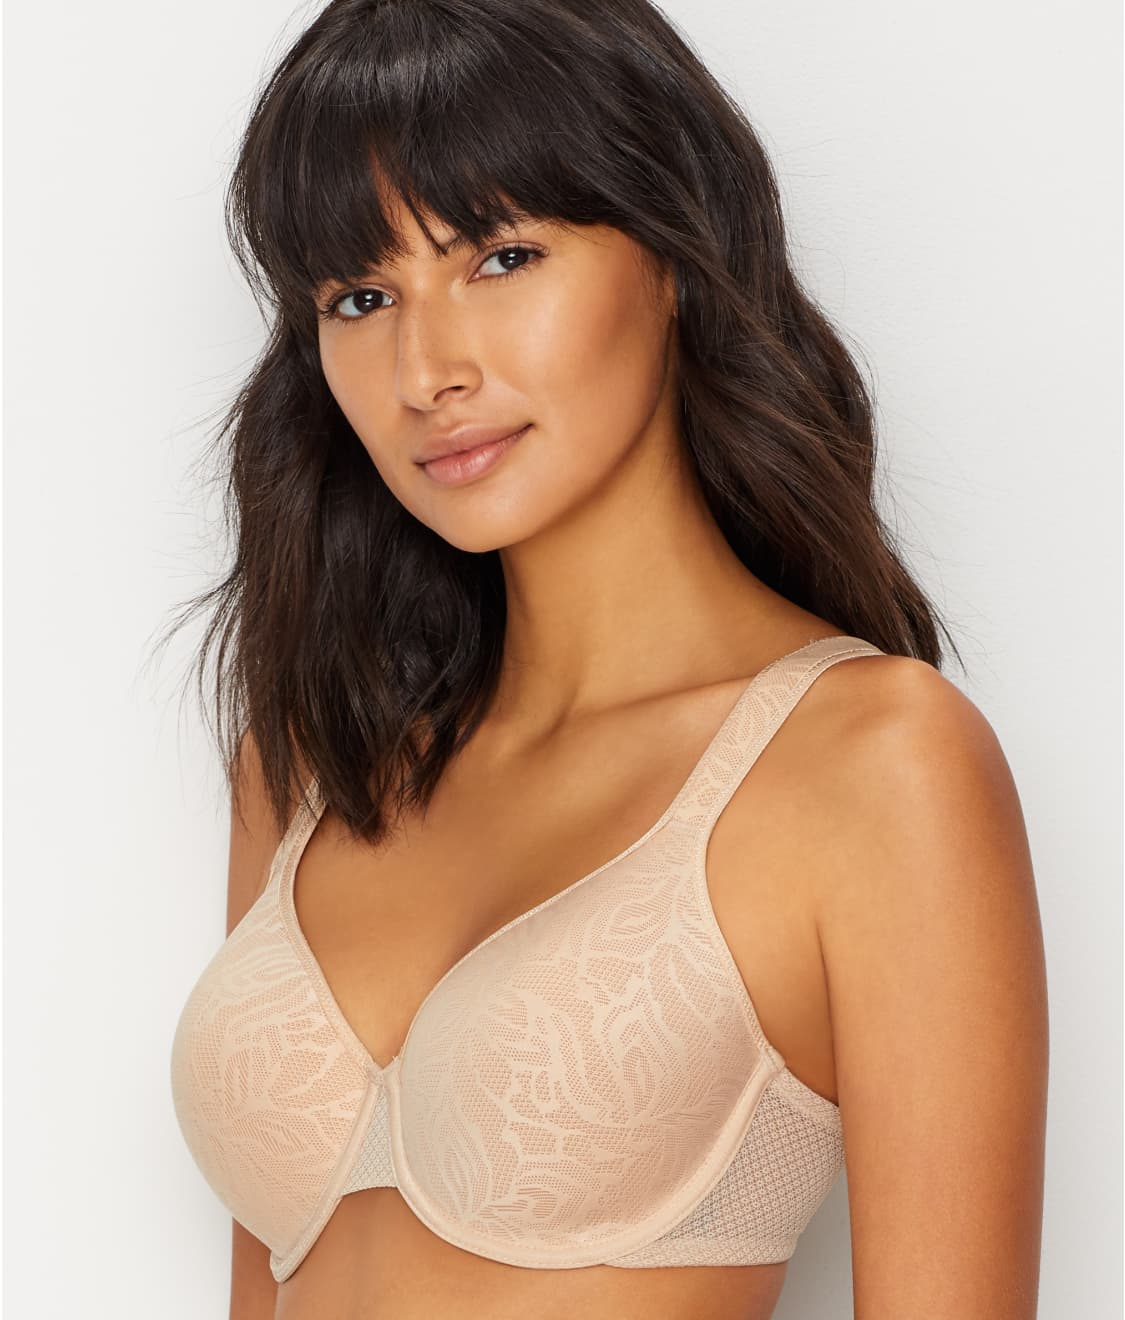 057d8e66bc See Awareness T-Shirt Bra in Sand